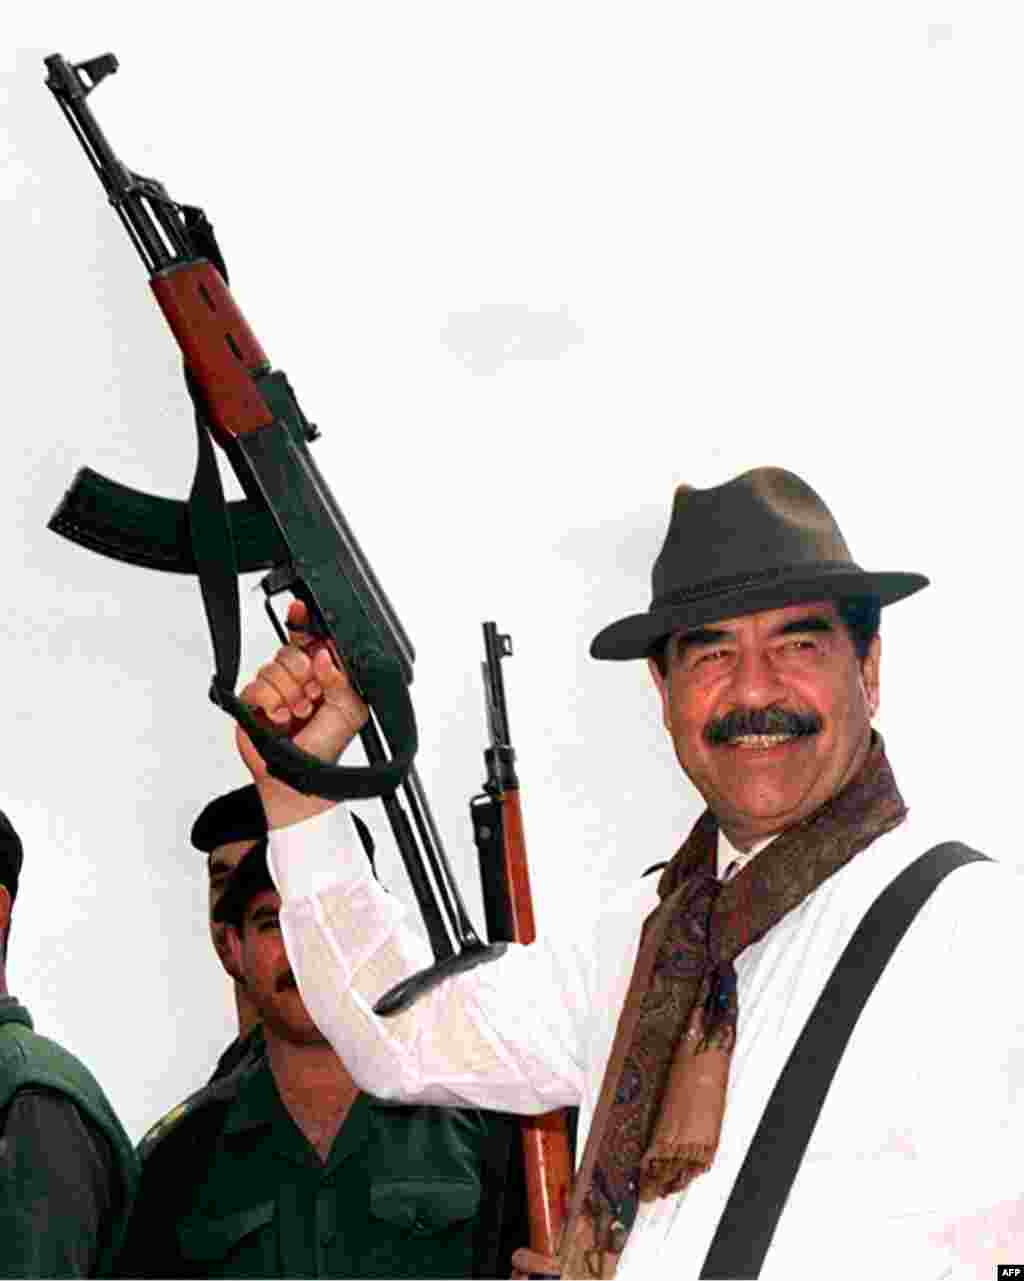 Saddam Hussein in the mid-1990s, posing with an AK-47. After the Iran-Iraq War, his attention turned to oil-rich Kuwait, which he invaded in August 1990.